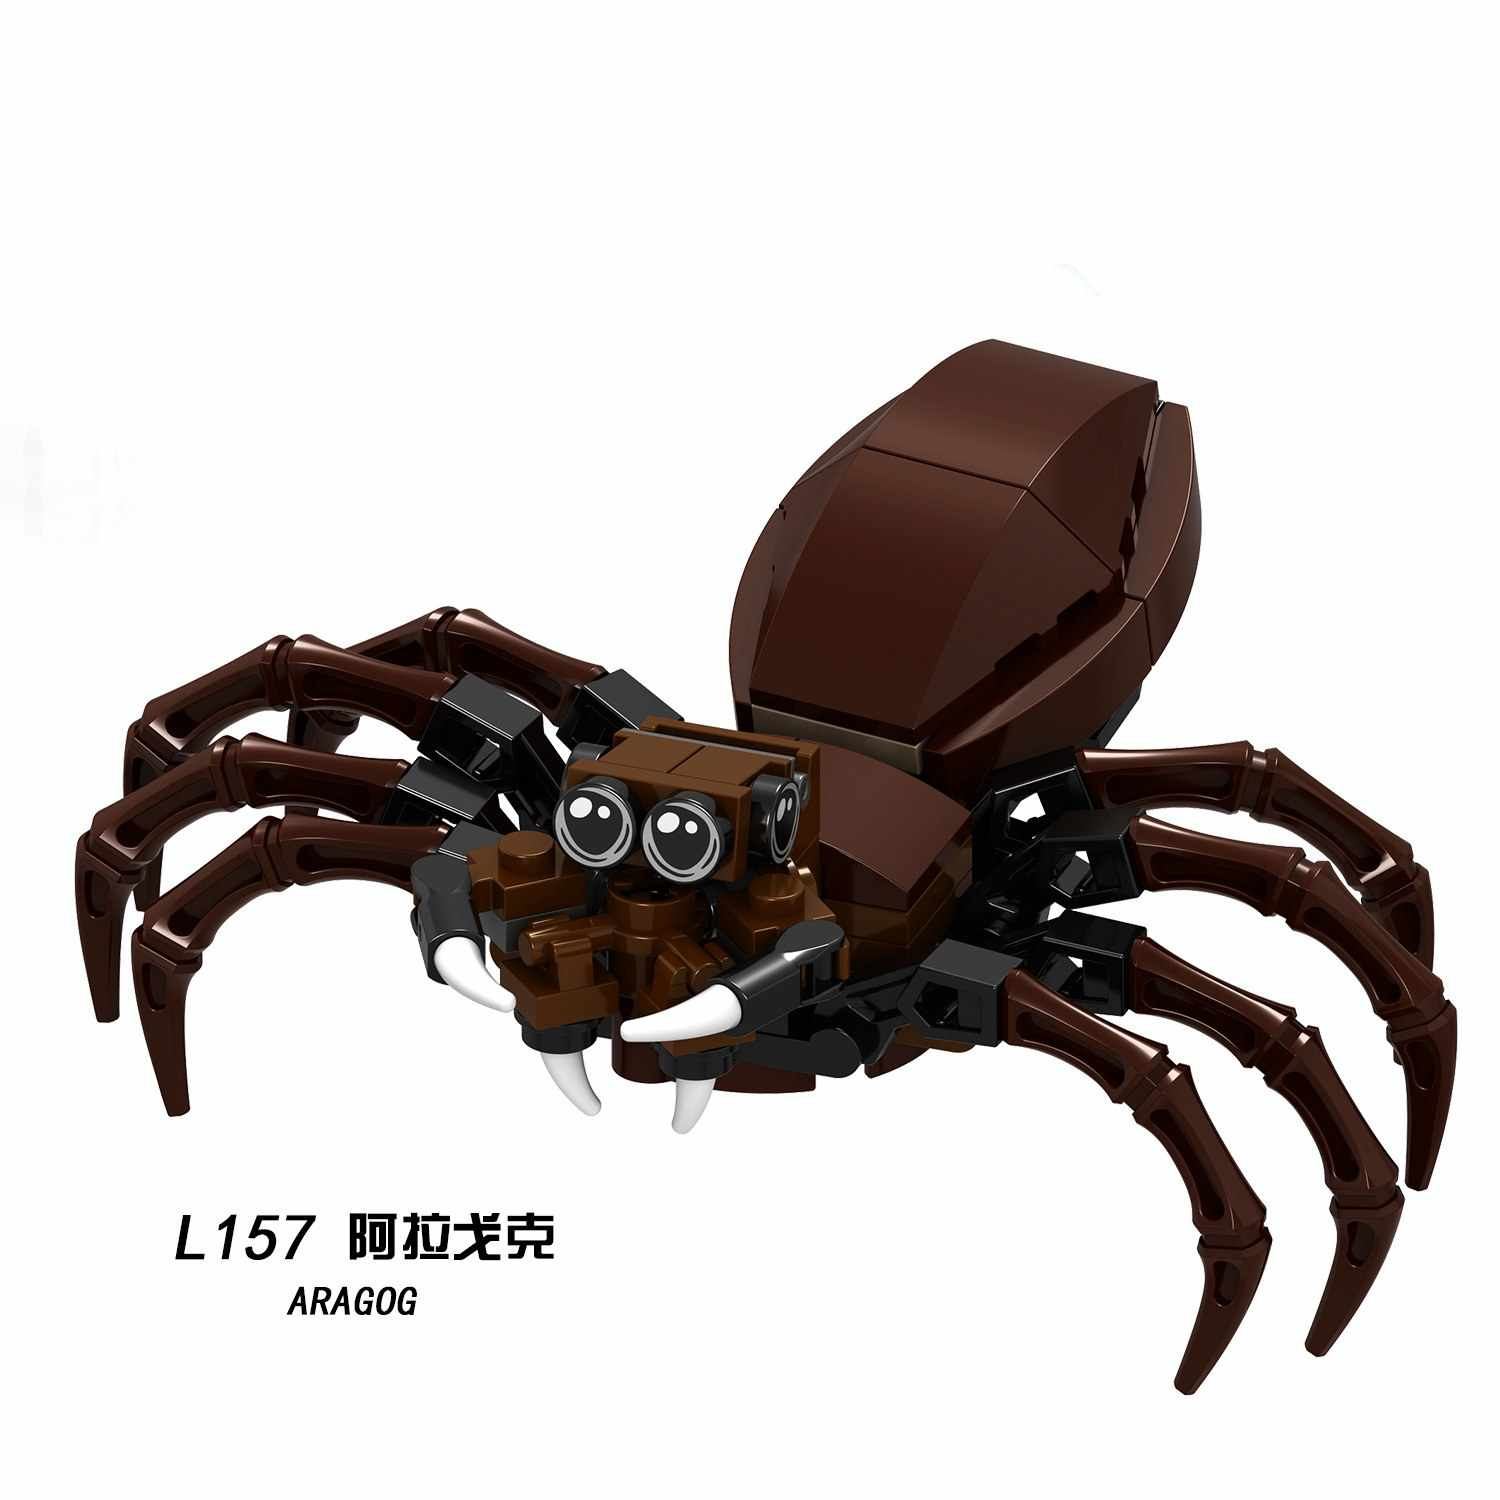 Legoing Movie Blocks Cartoon Super Heroes Aragog Occamy Hungarian Thestral Building Blocks Toys For Children Assemble Toy Block